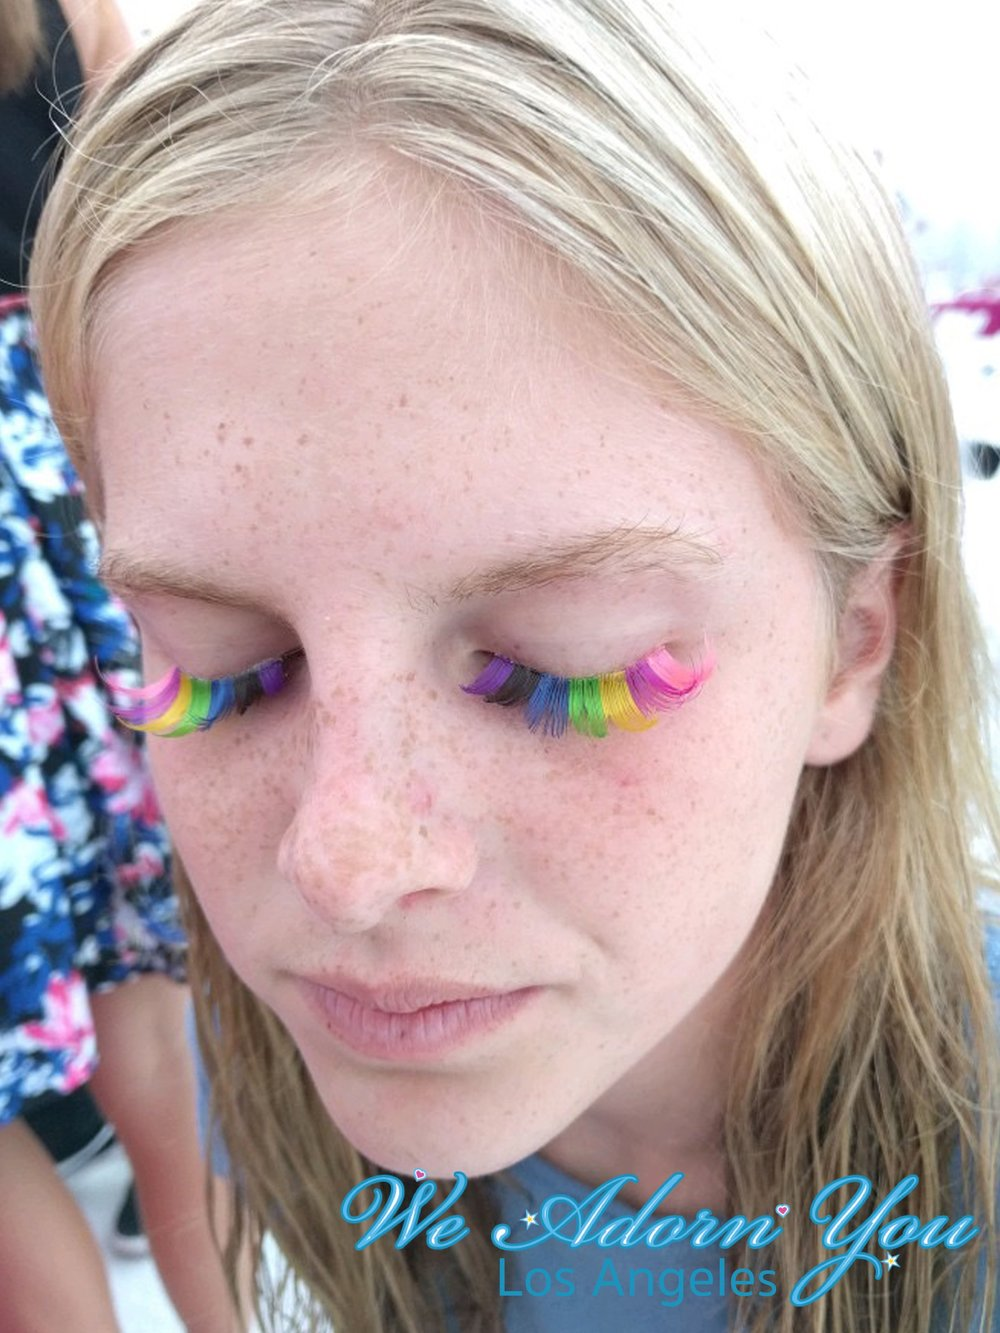 We Adorn You Los Angeles party eyelashes rainbow.jpg